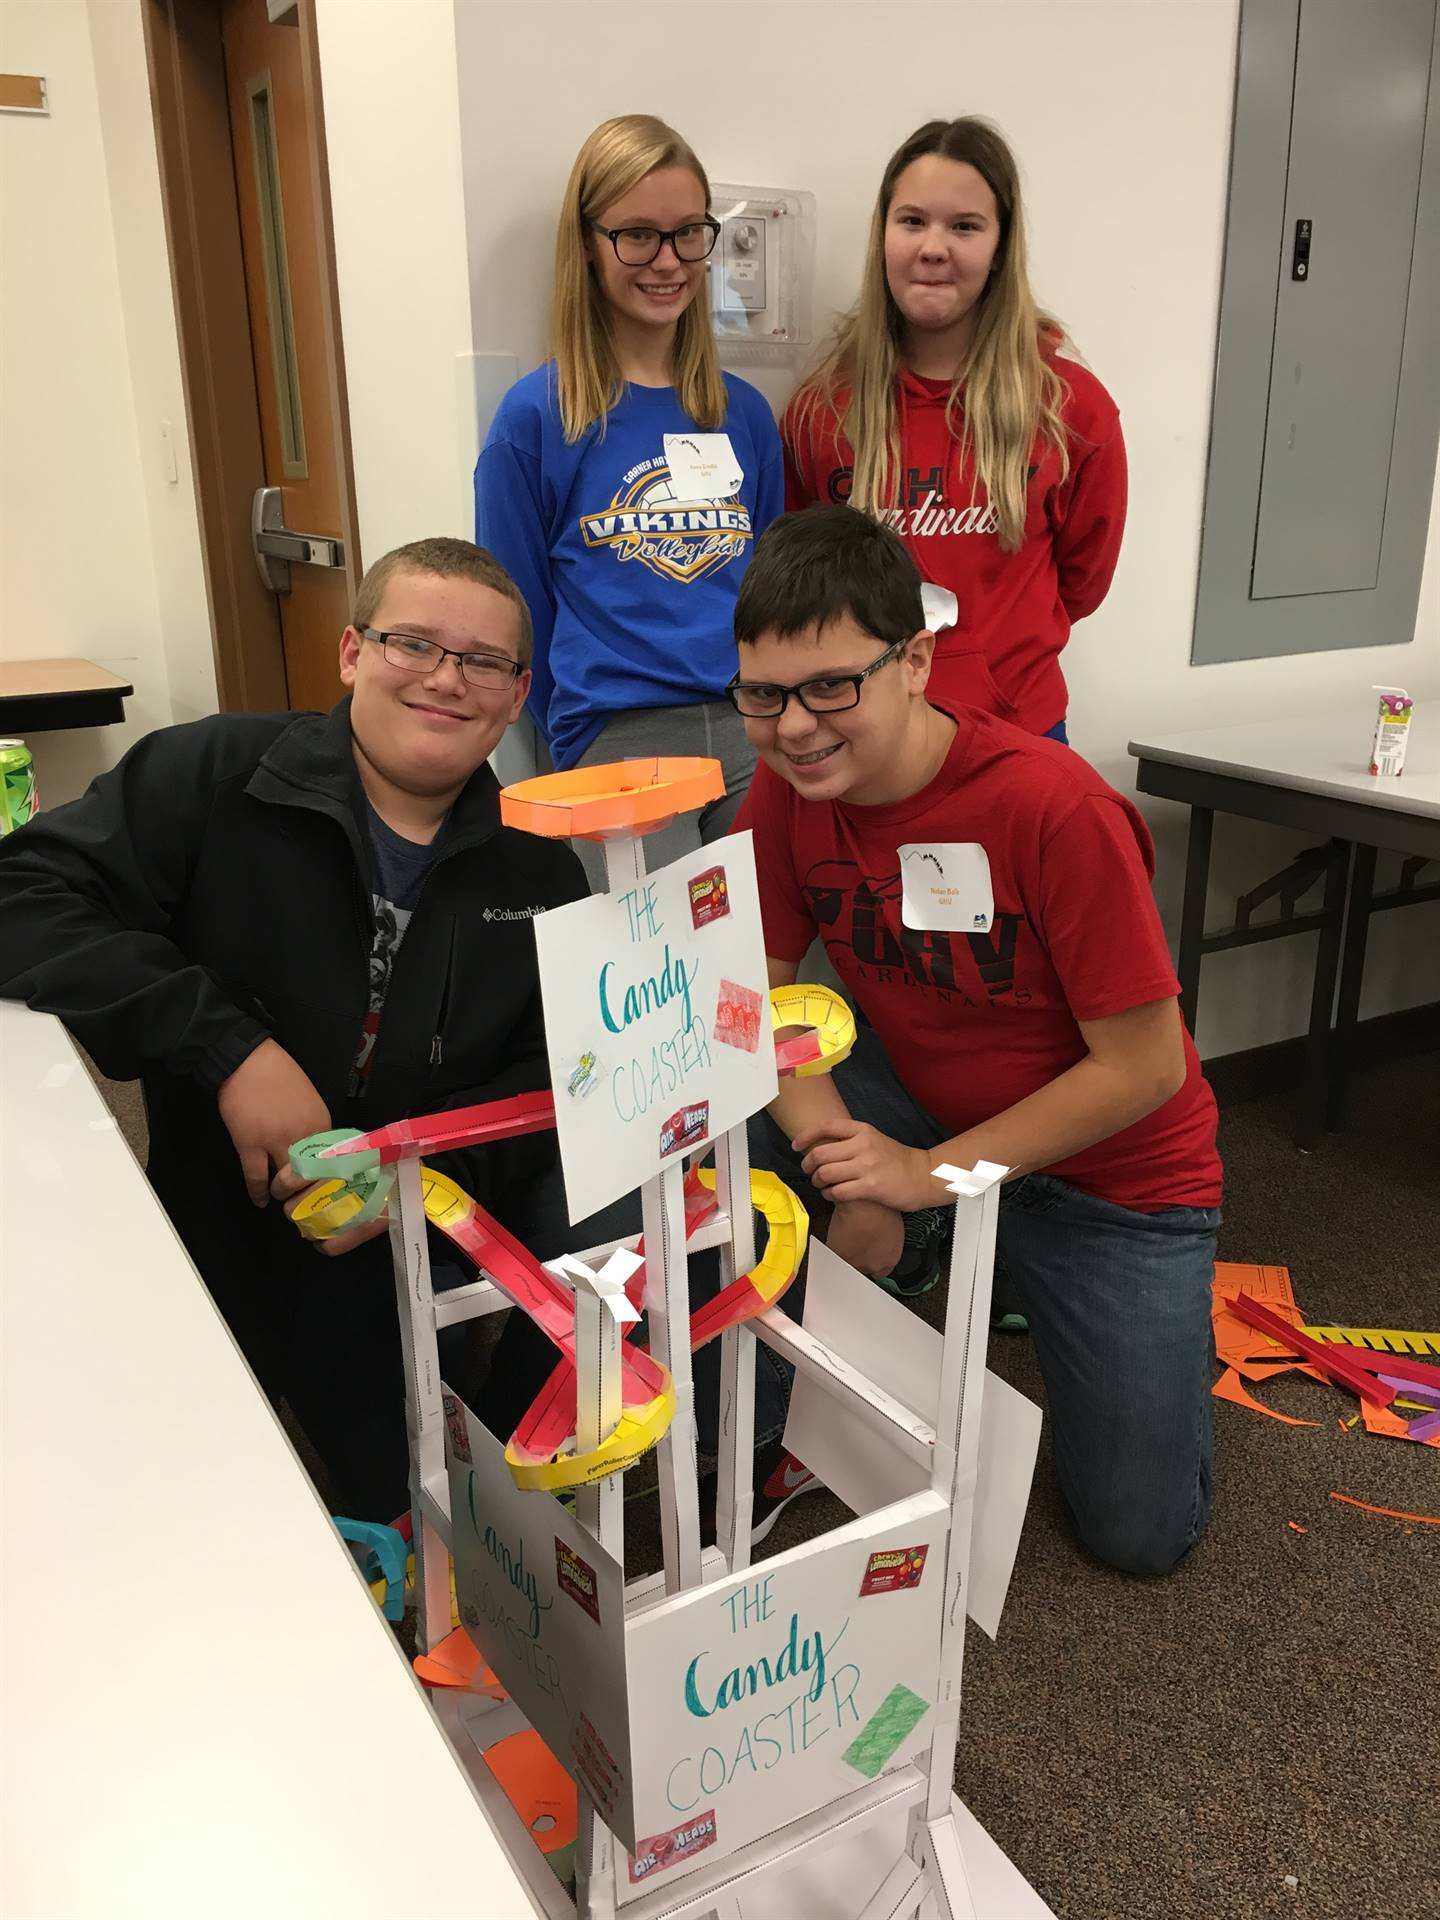 Students posing with a model-size roller coaster that they created